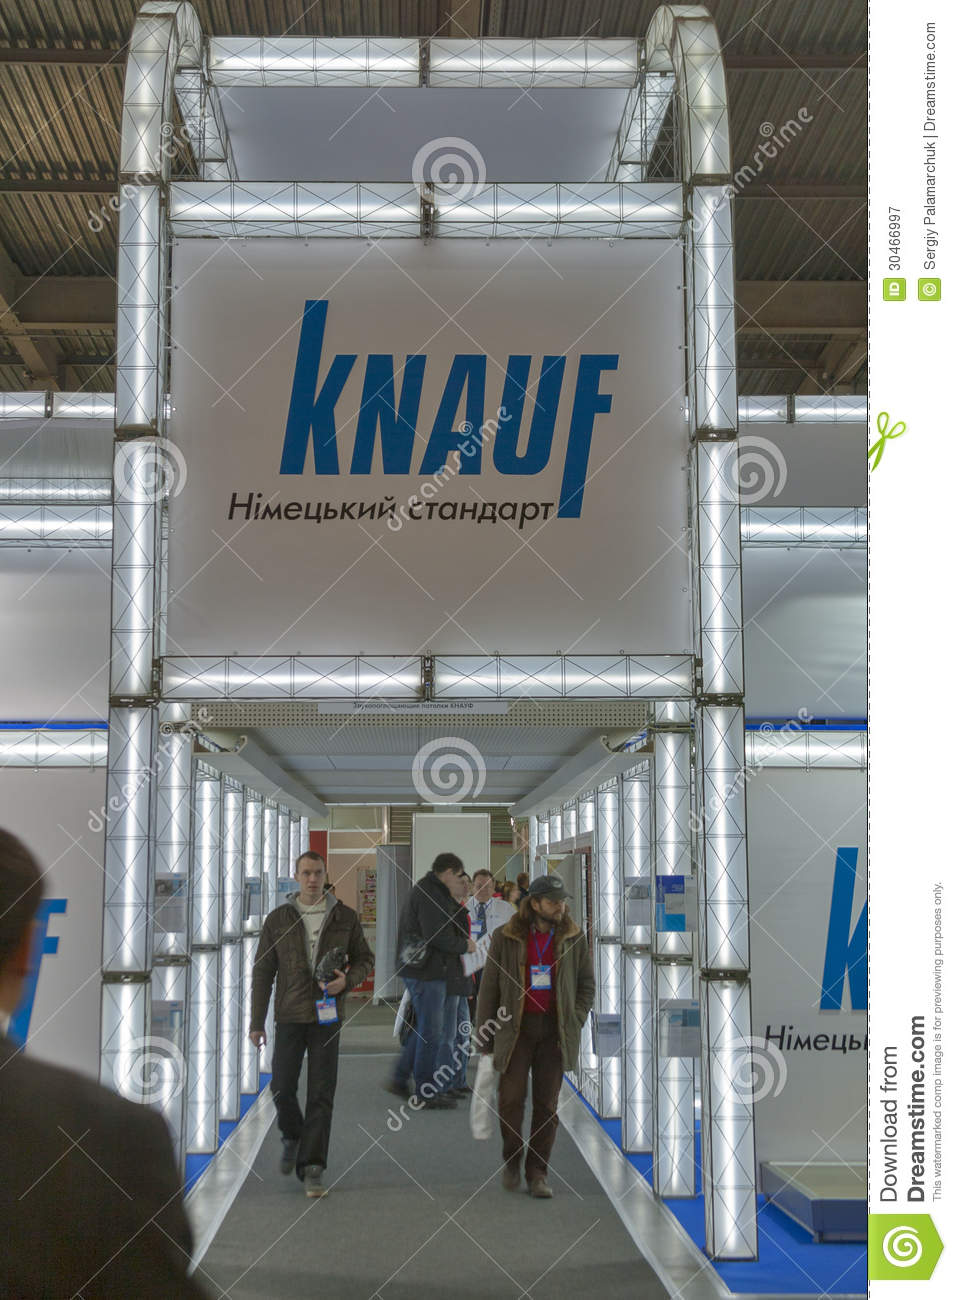 knauf germany company booth editorial photography image